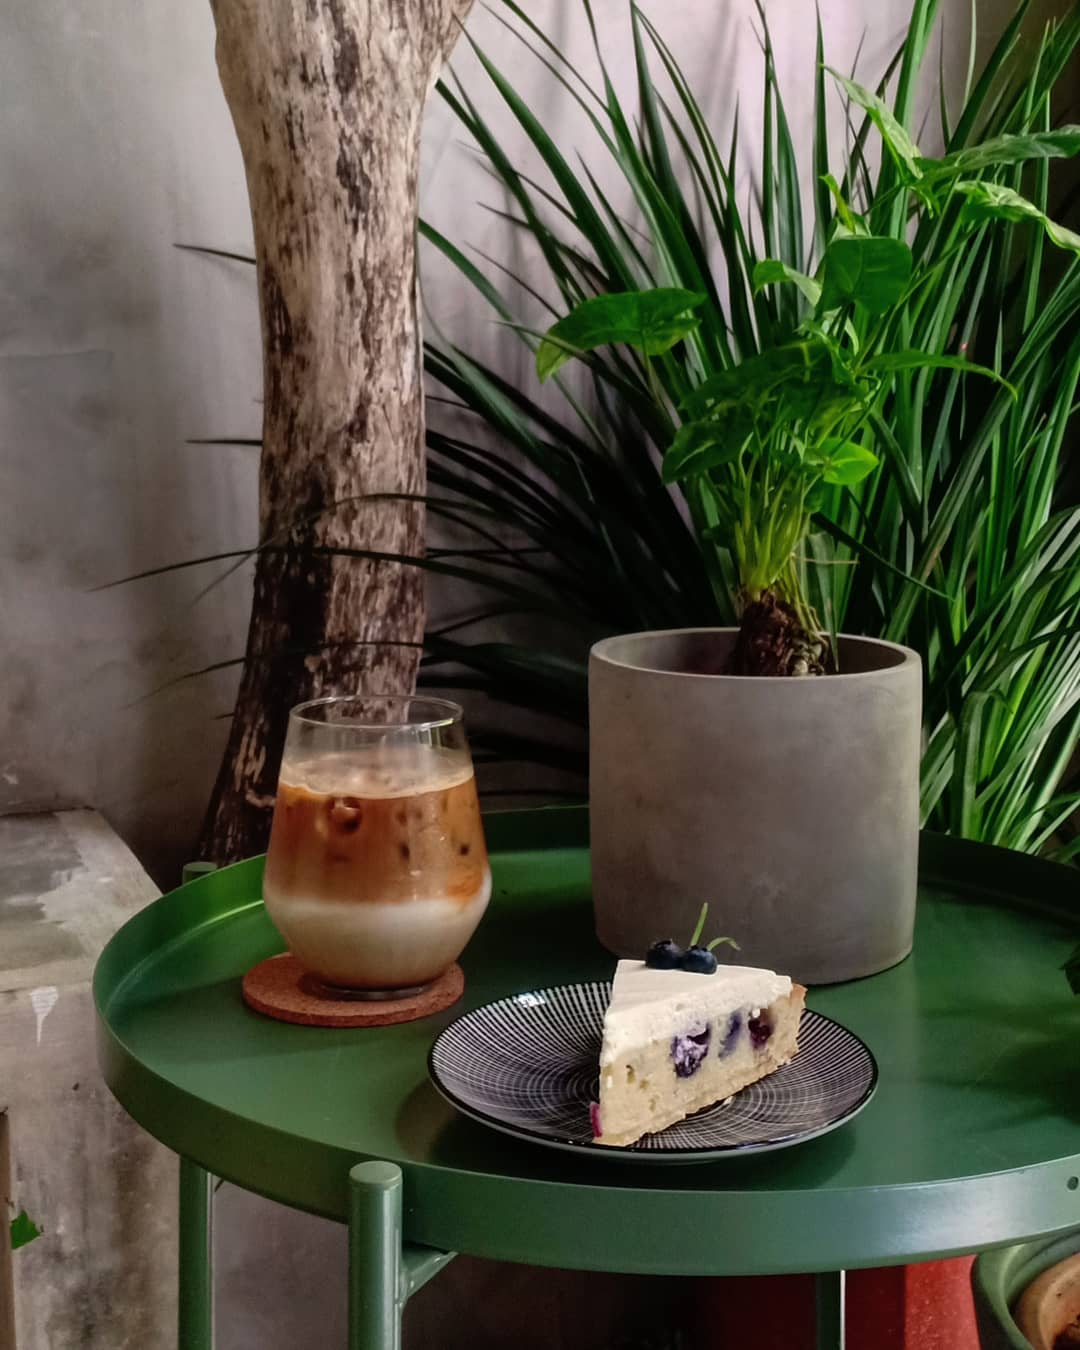 Sipping Corner cakes + coffee